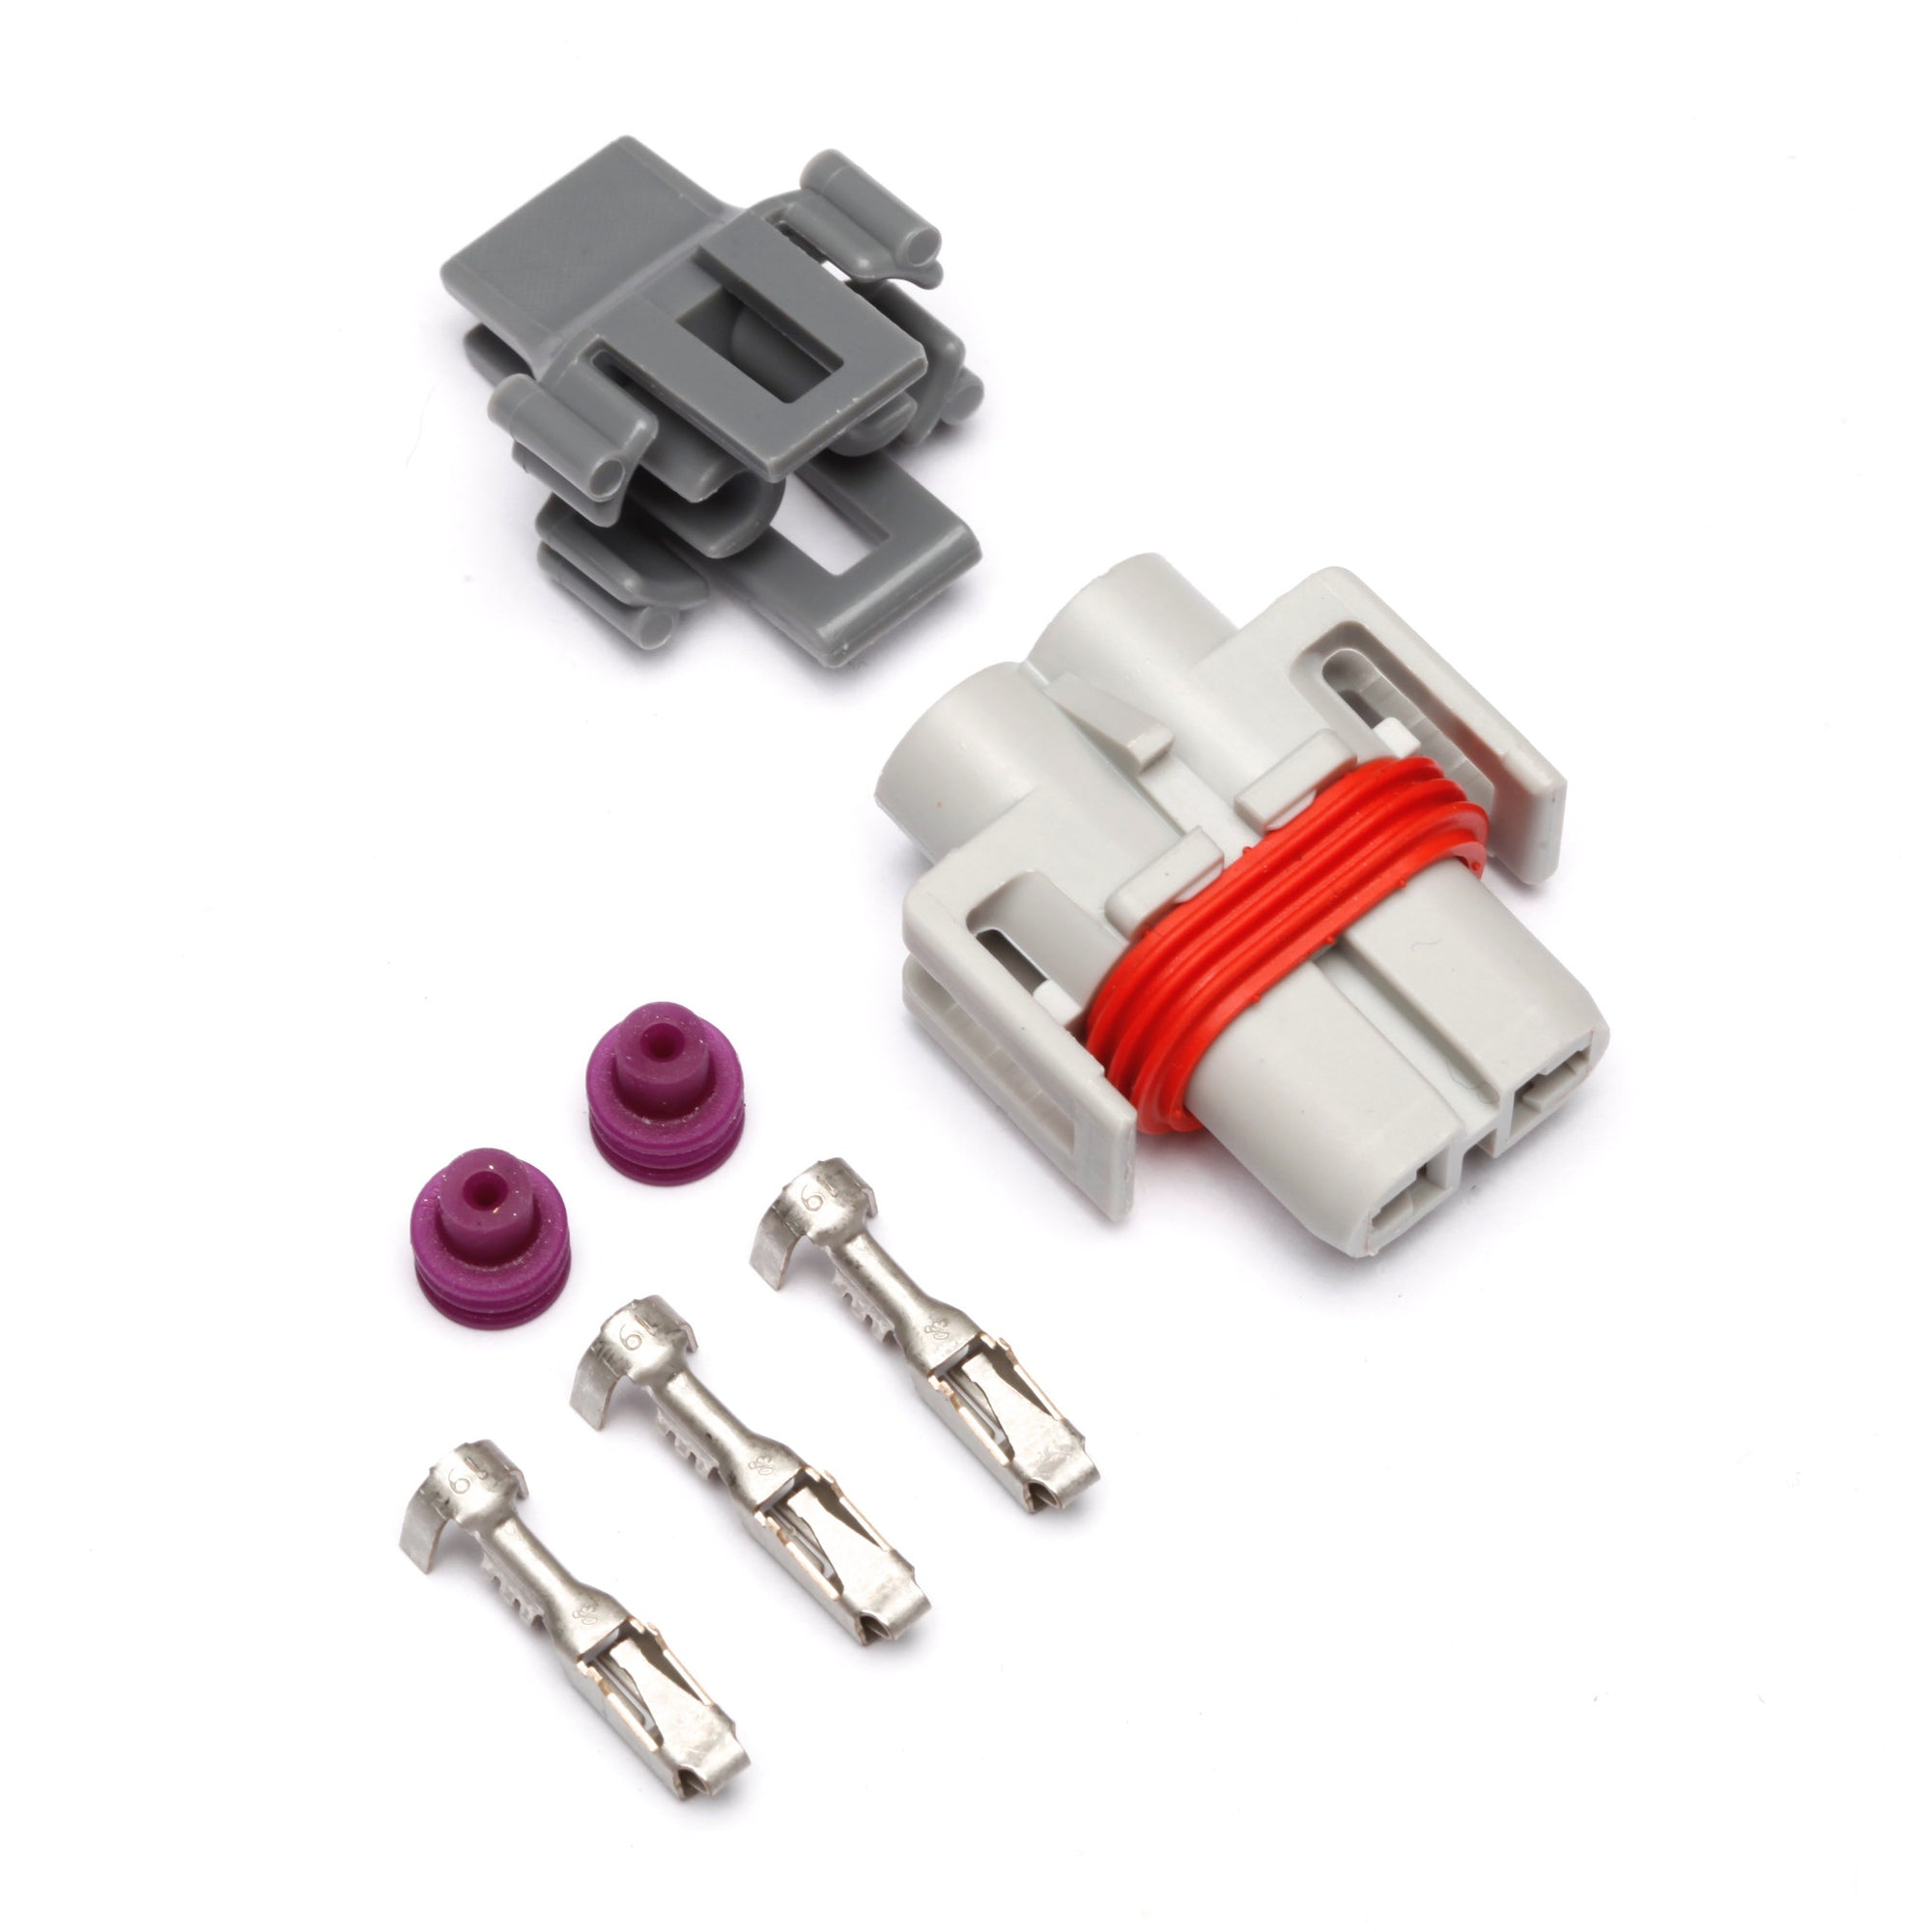 Connectors - Delphi 2-Position Power Connector Kit